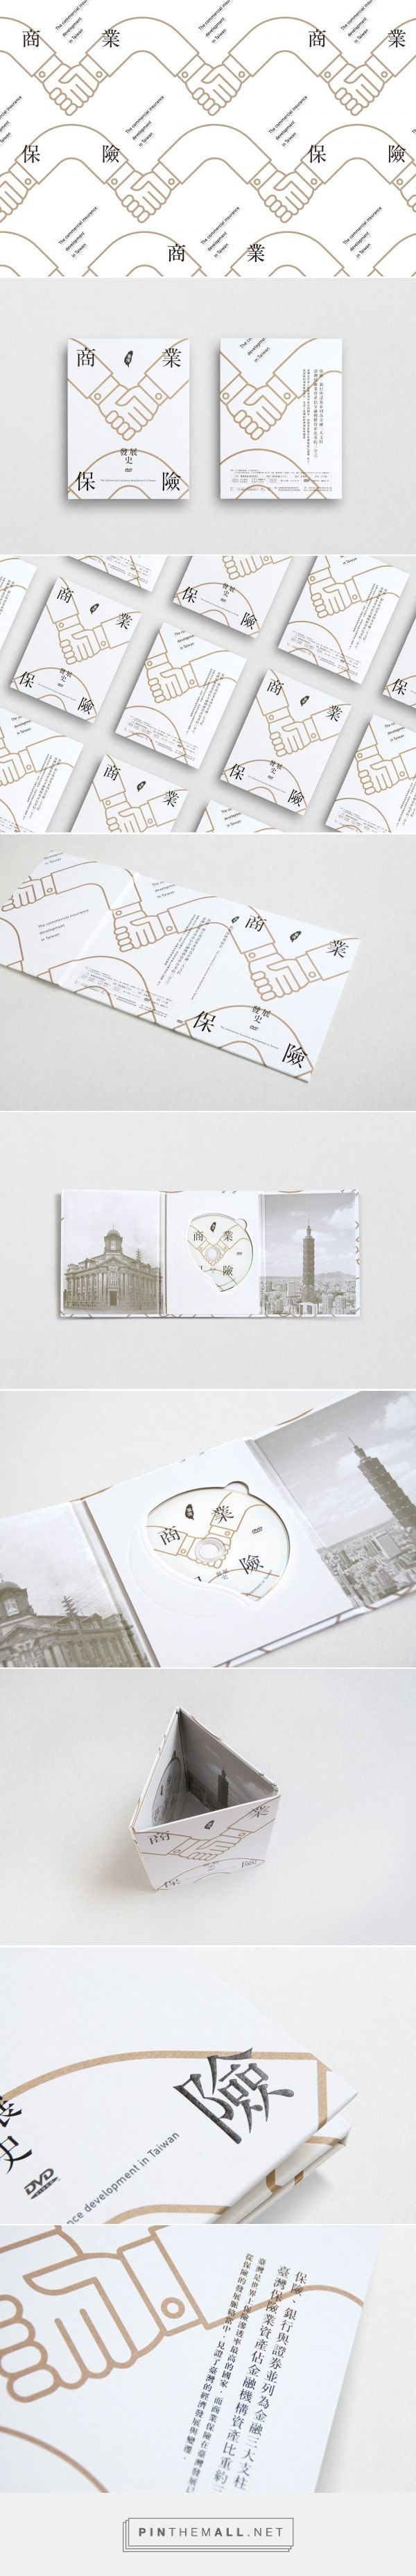 The commercial insurance development in Taiwan / DVD on Behance - created via https://pinthemall.net